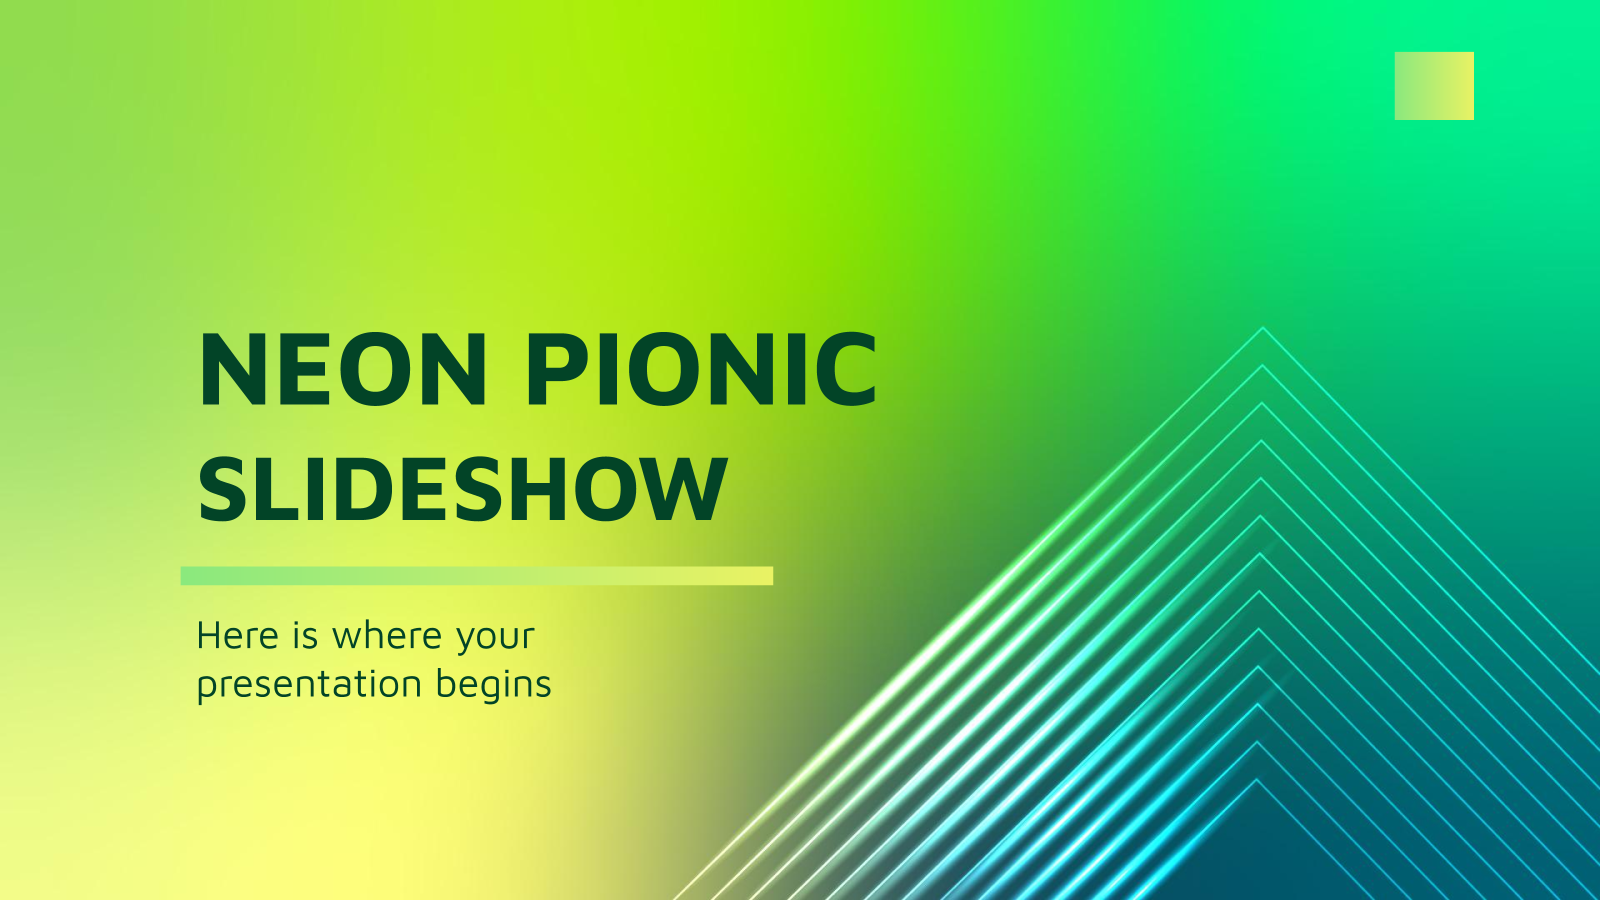 Neon Pionic Slideshow presentation template